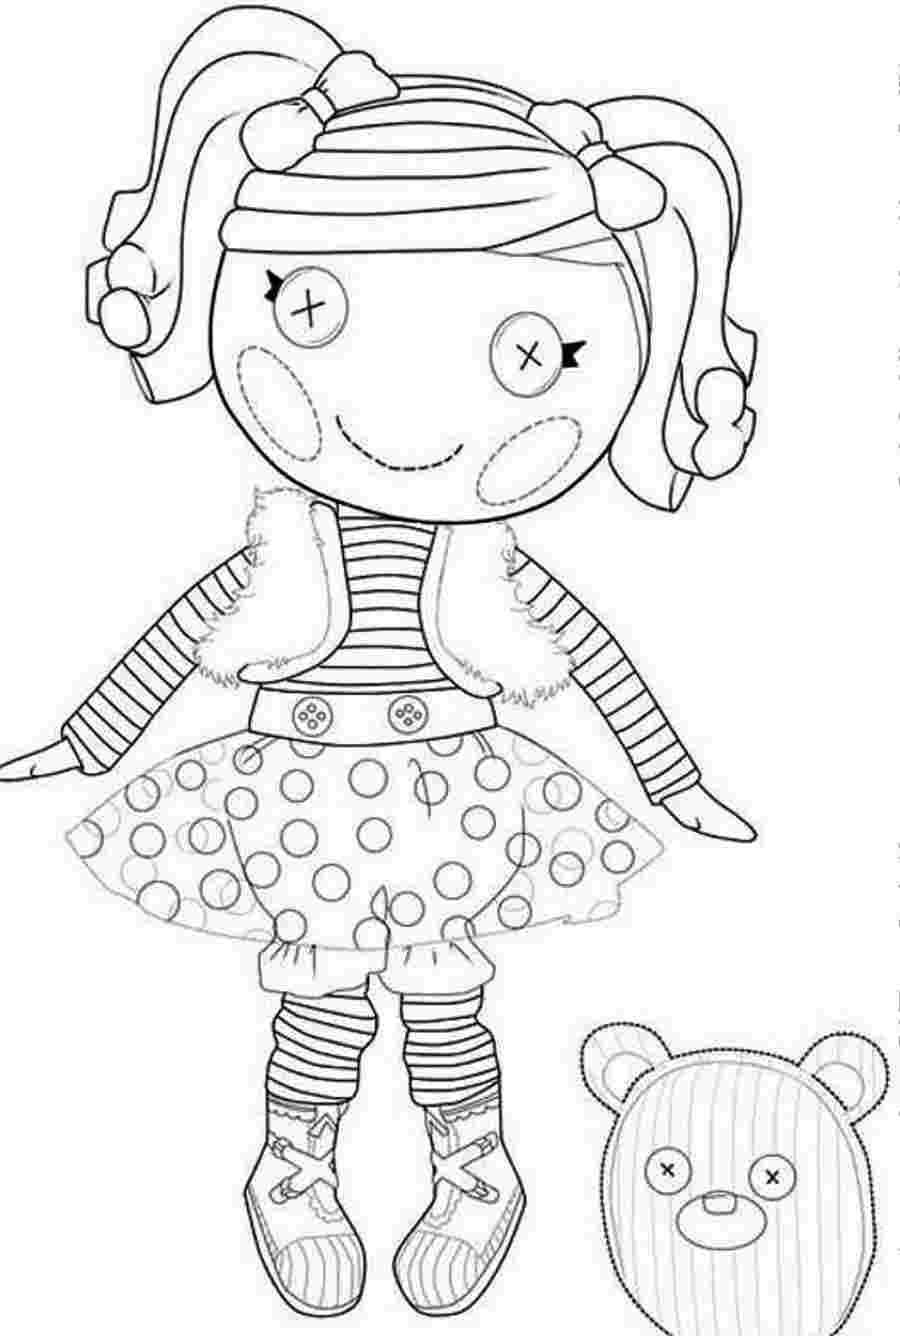 coloring pages lalaloopsy dolls the best lalaloopsy dolls coloring pages pages lalaloopsy coloring dolls